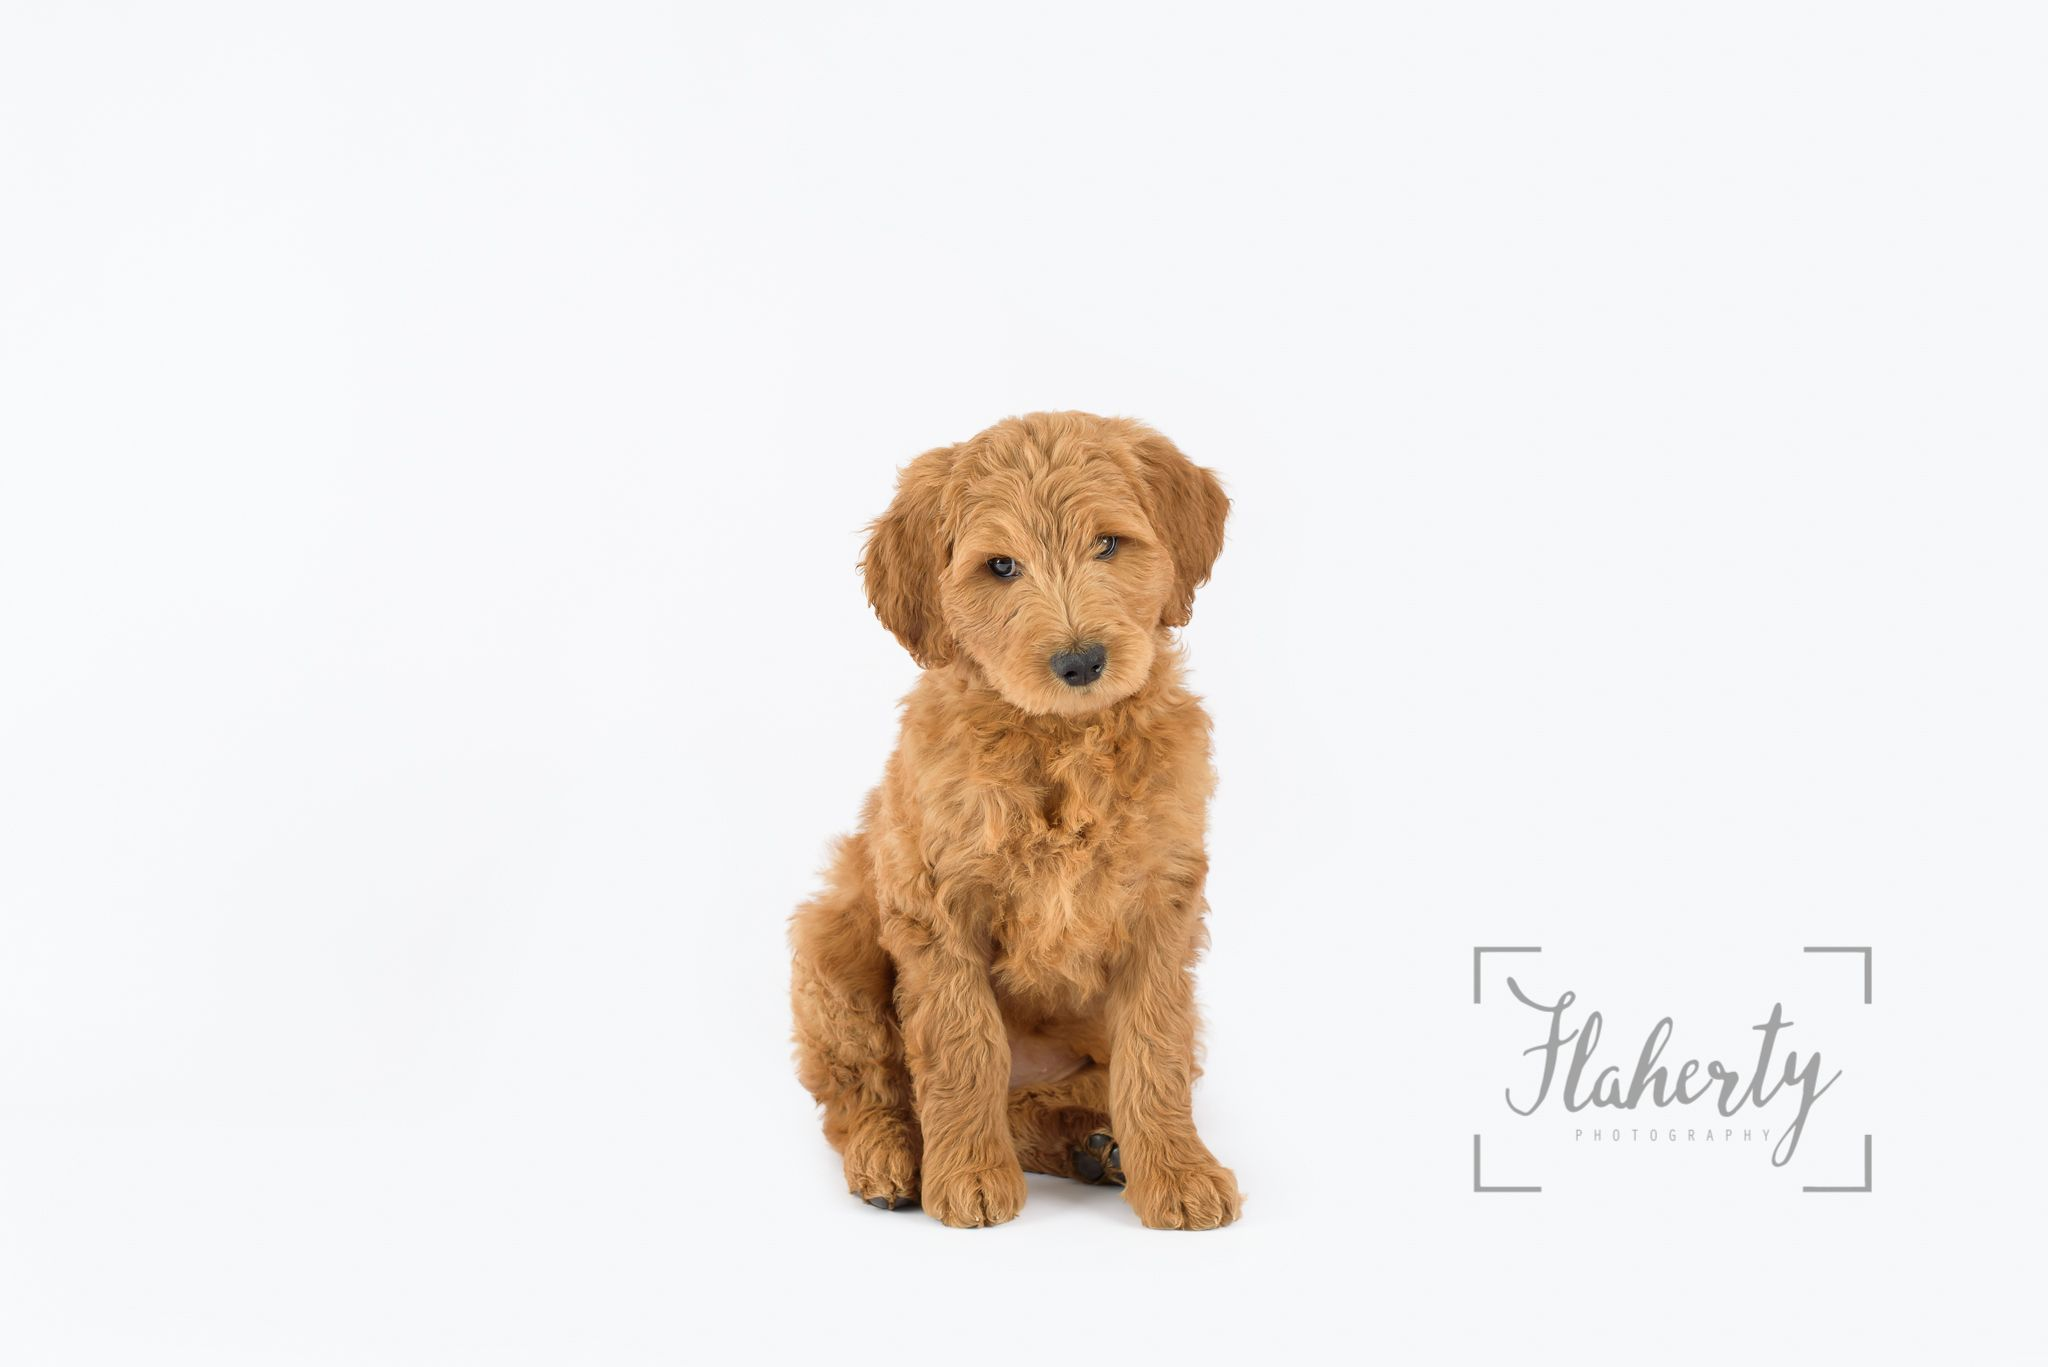 Goldendoodle Puppy Photoshoot Puppy Photo Shoot Puppy Portrait Flaherty Photography Puppy Portraits Goldendoodle Puppy Puppy Photos